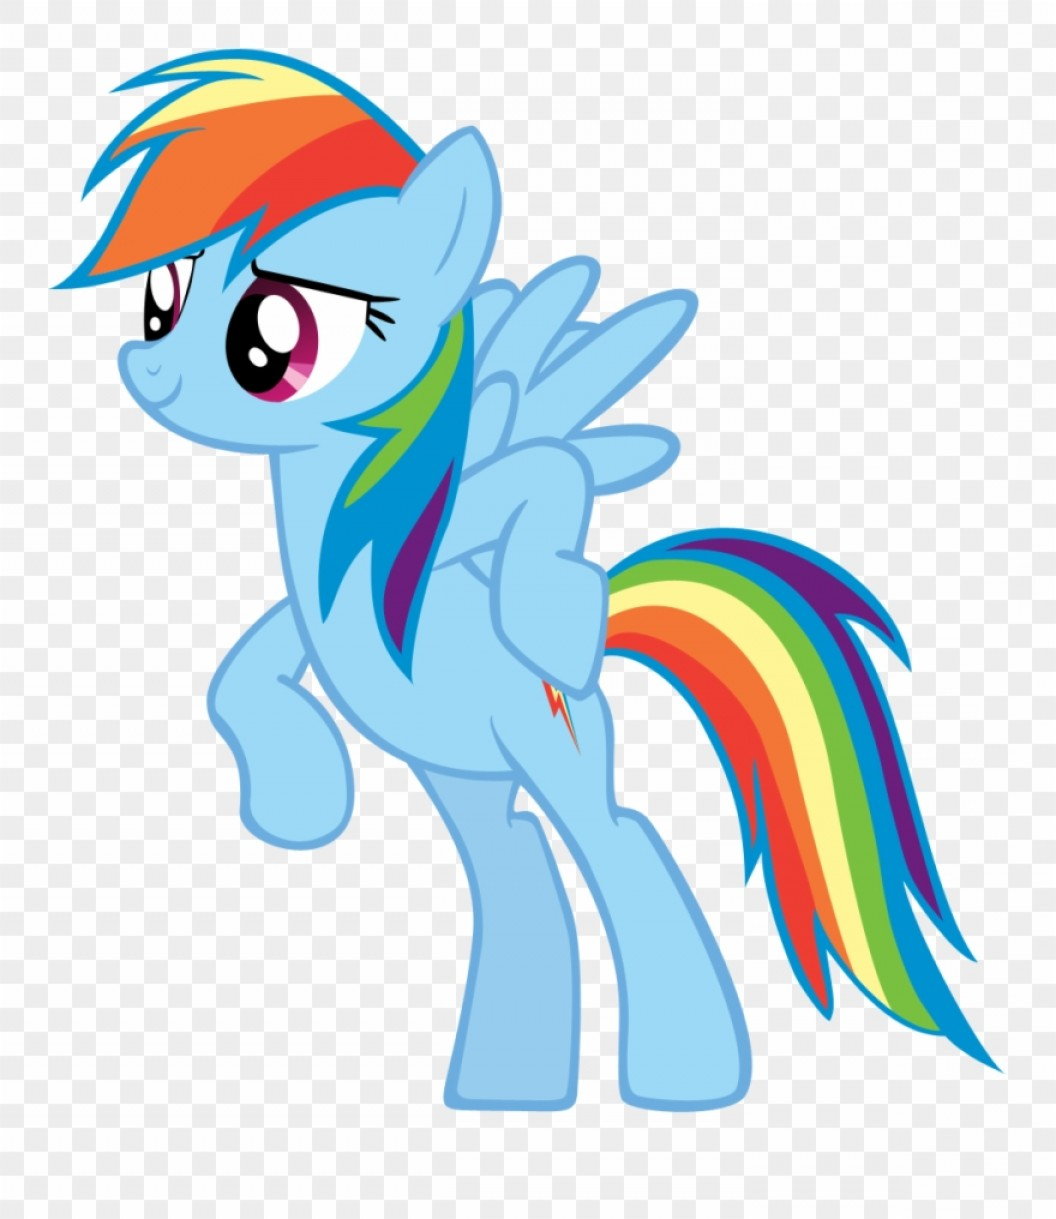 Bjriobc First Vector Mlp Rainbow Dash Happy Clipart.